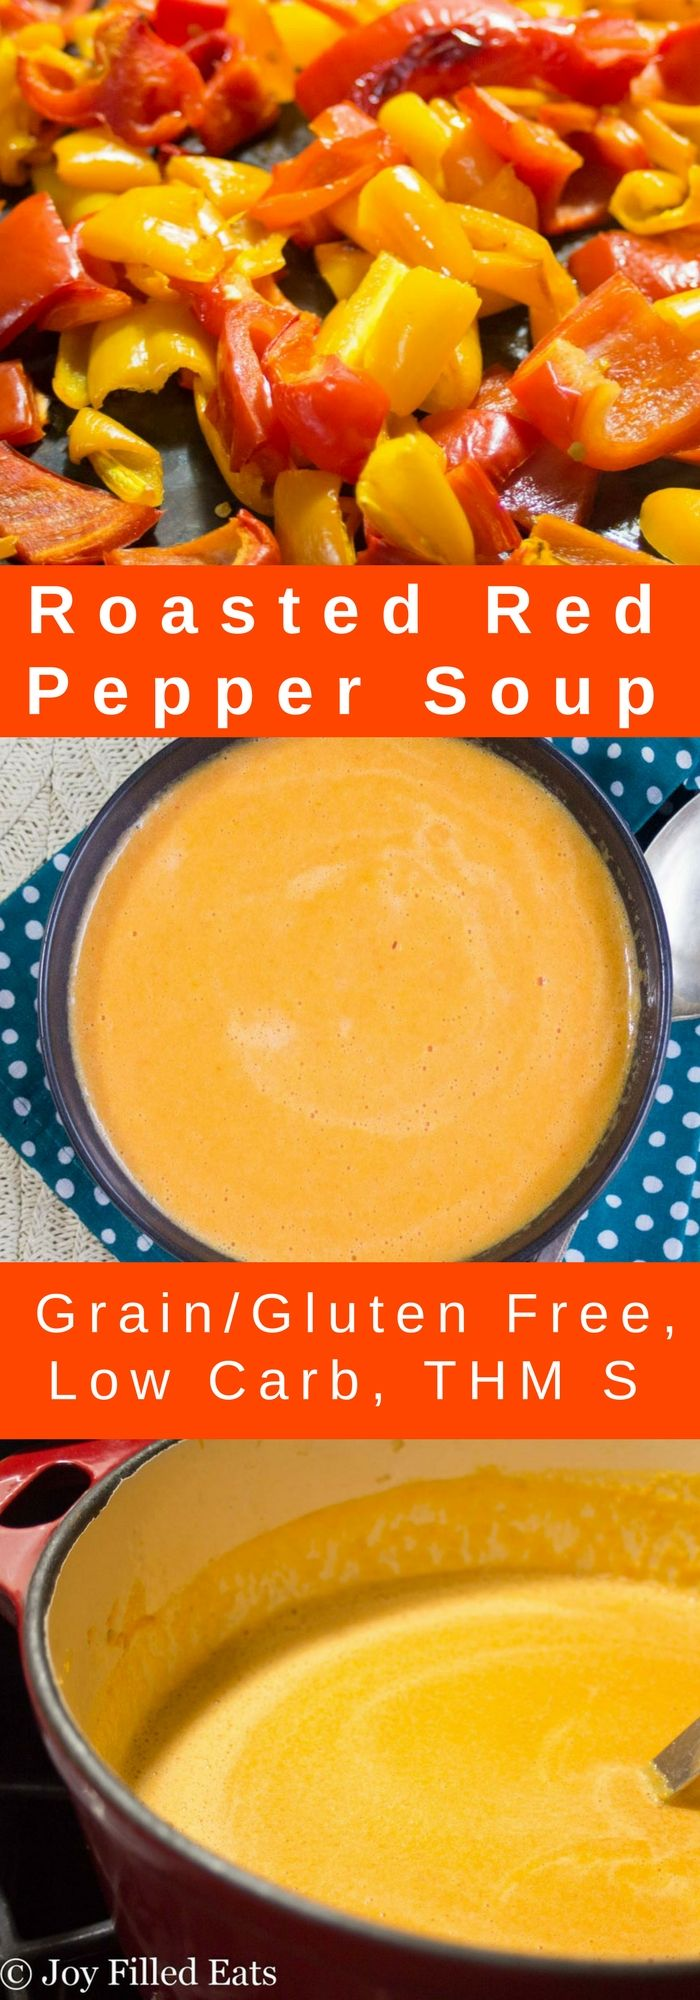 Roasted Red Pepper Soup - Low Carb, Grain/Gluten Free, THM S   via @joyfilledeats